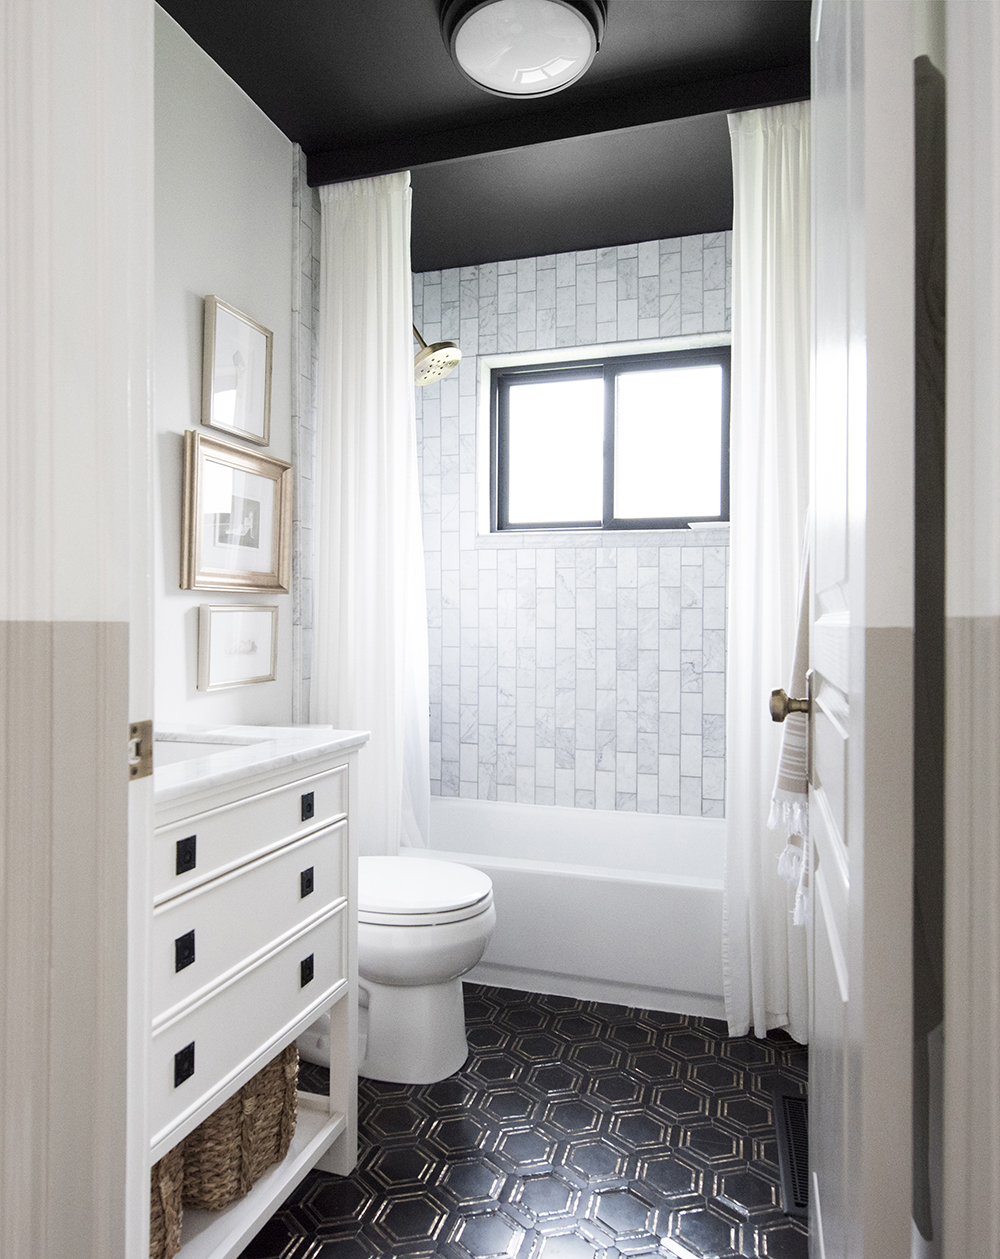 Bathroom with Black and Brass Floor Tile - roomfortuesday.com